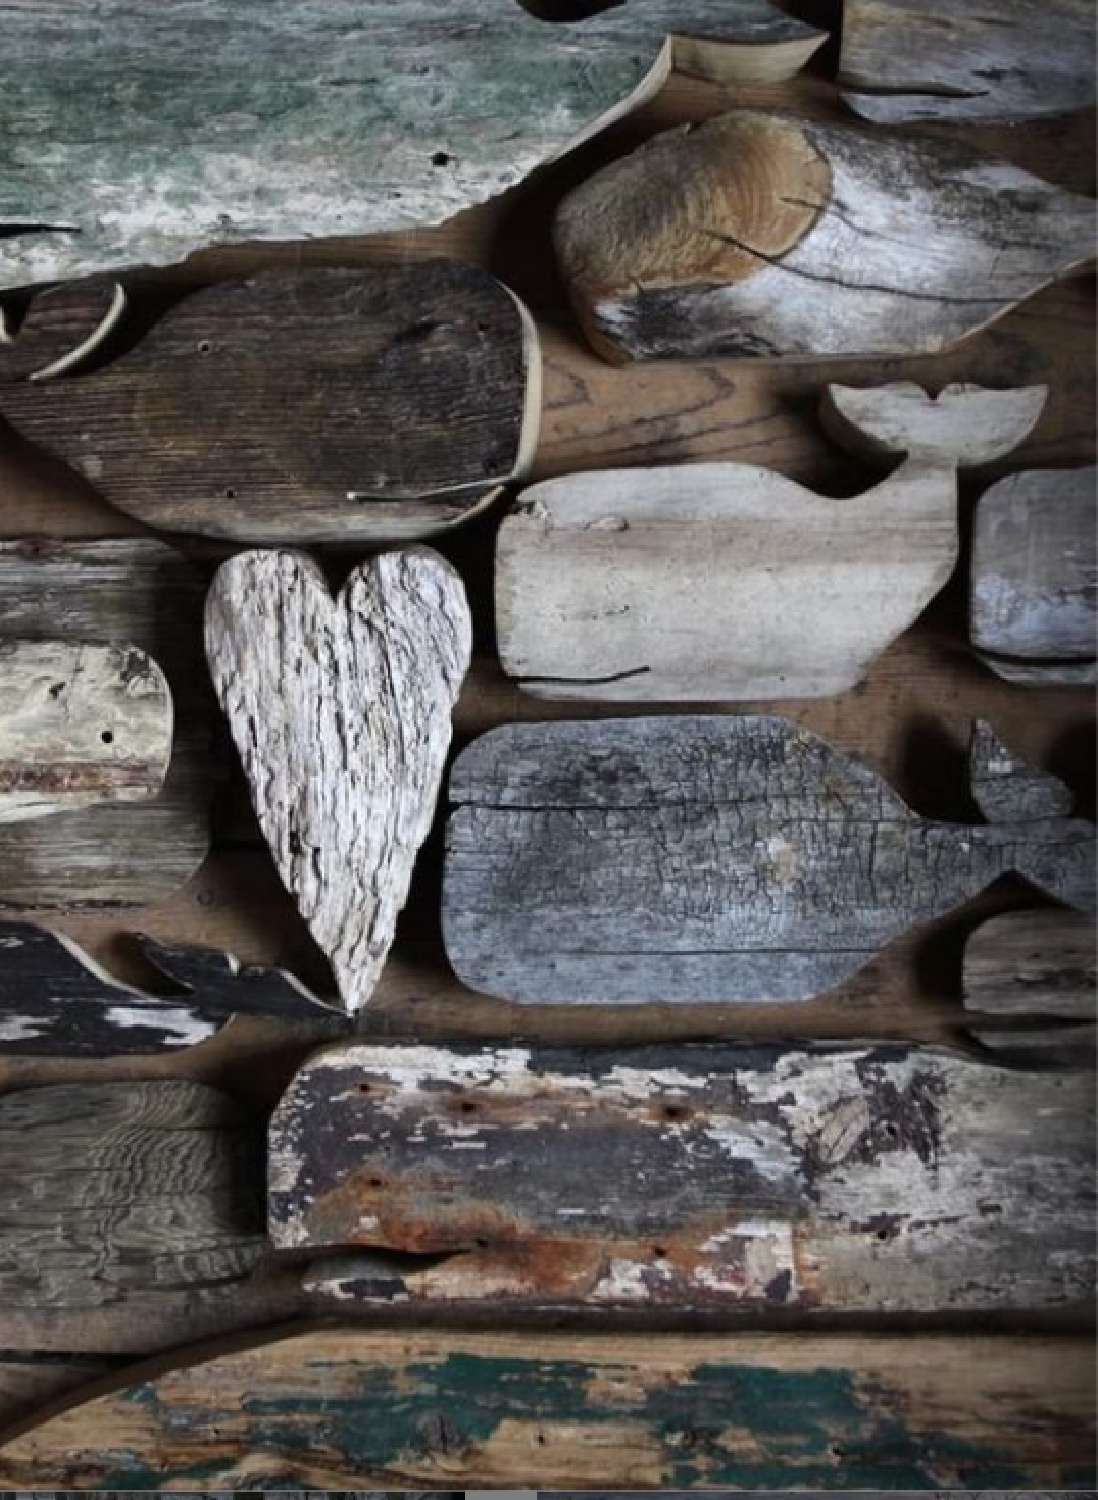 Massed collection of rustic wood whale shapes - Nora Murphy Country House. #countrydecor #whales #coastalstyle